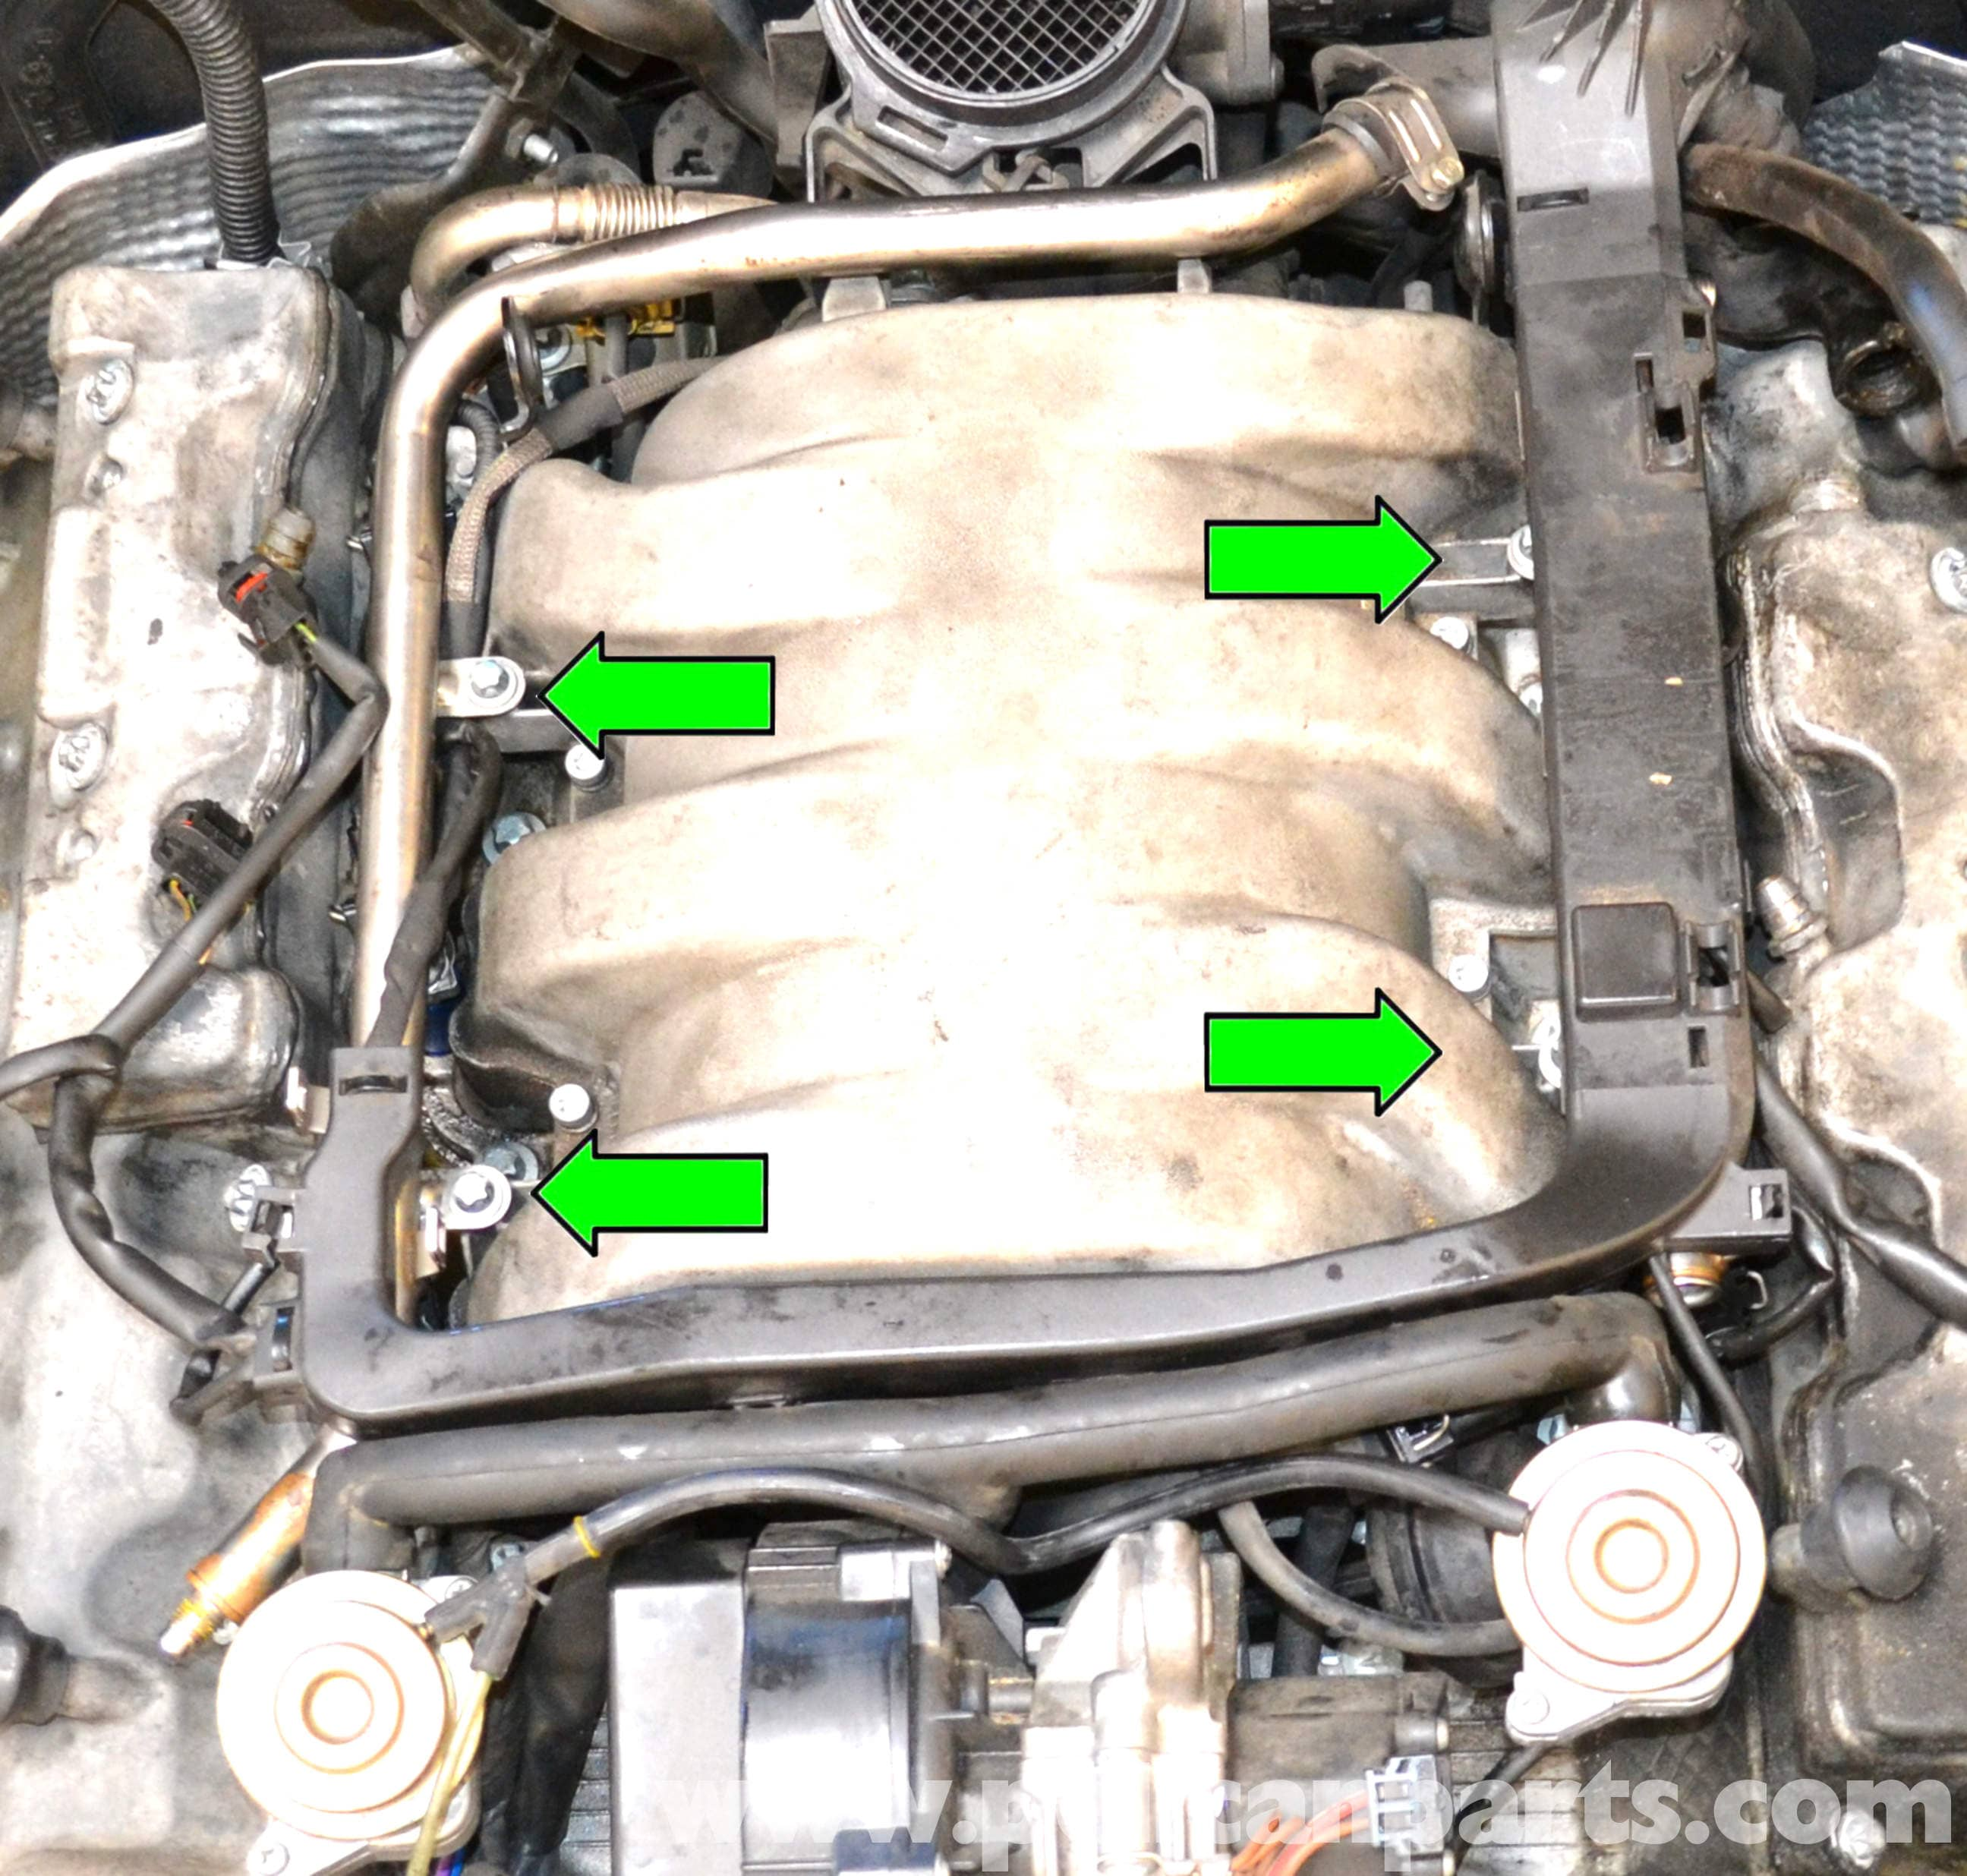 Mercedes Benz Clk320 Fuel Injector Replacement 2003 2006 Pelican Ml 320 Filter Location Large Image Extra